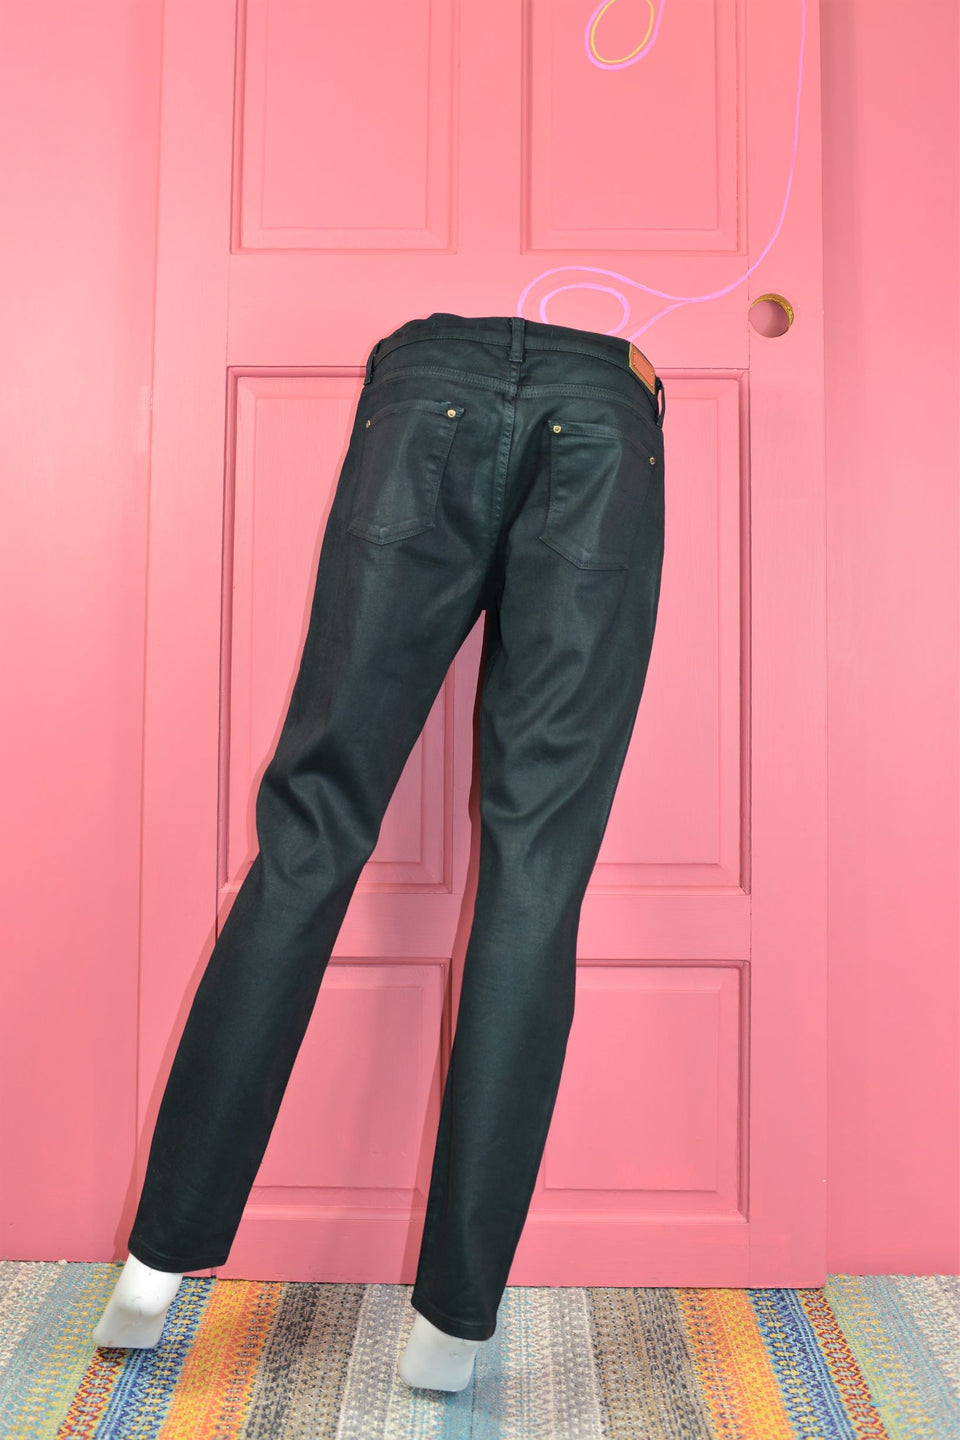 ZARA Women's Slim Fit 'Oilcloth' Effect Jeans, Size 42 (12/14). Pre-loved.